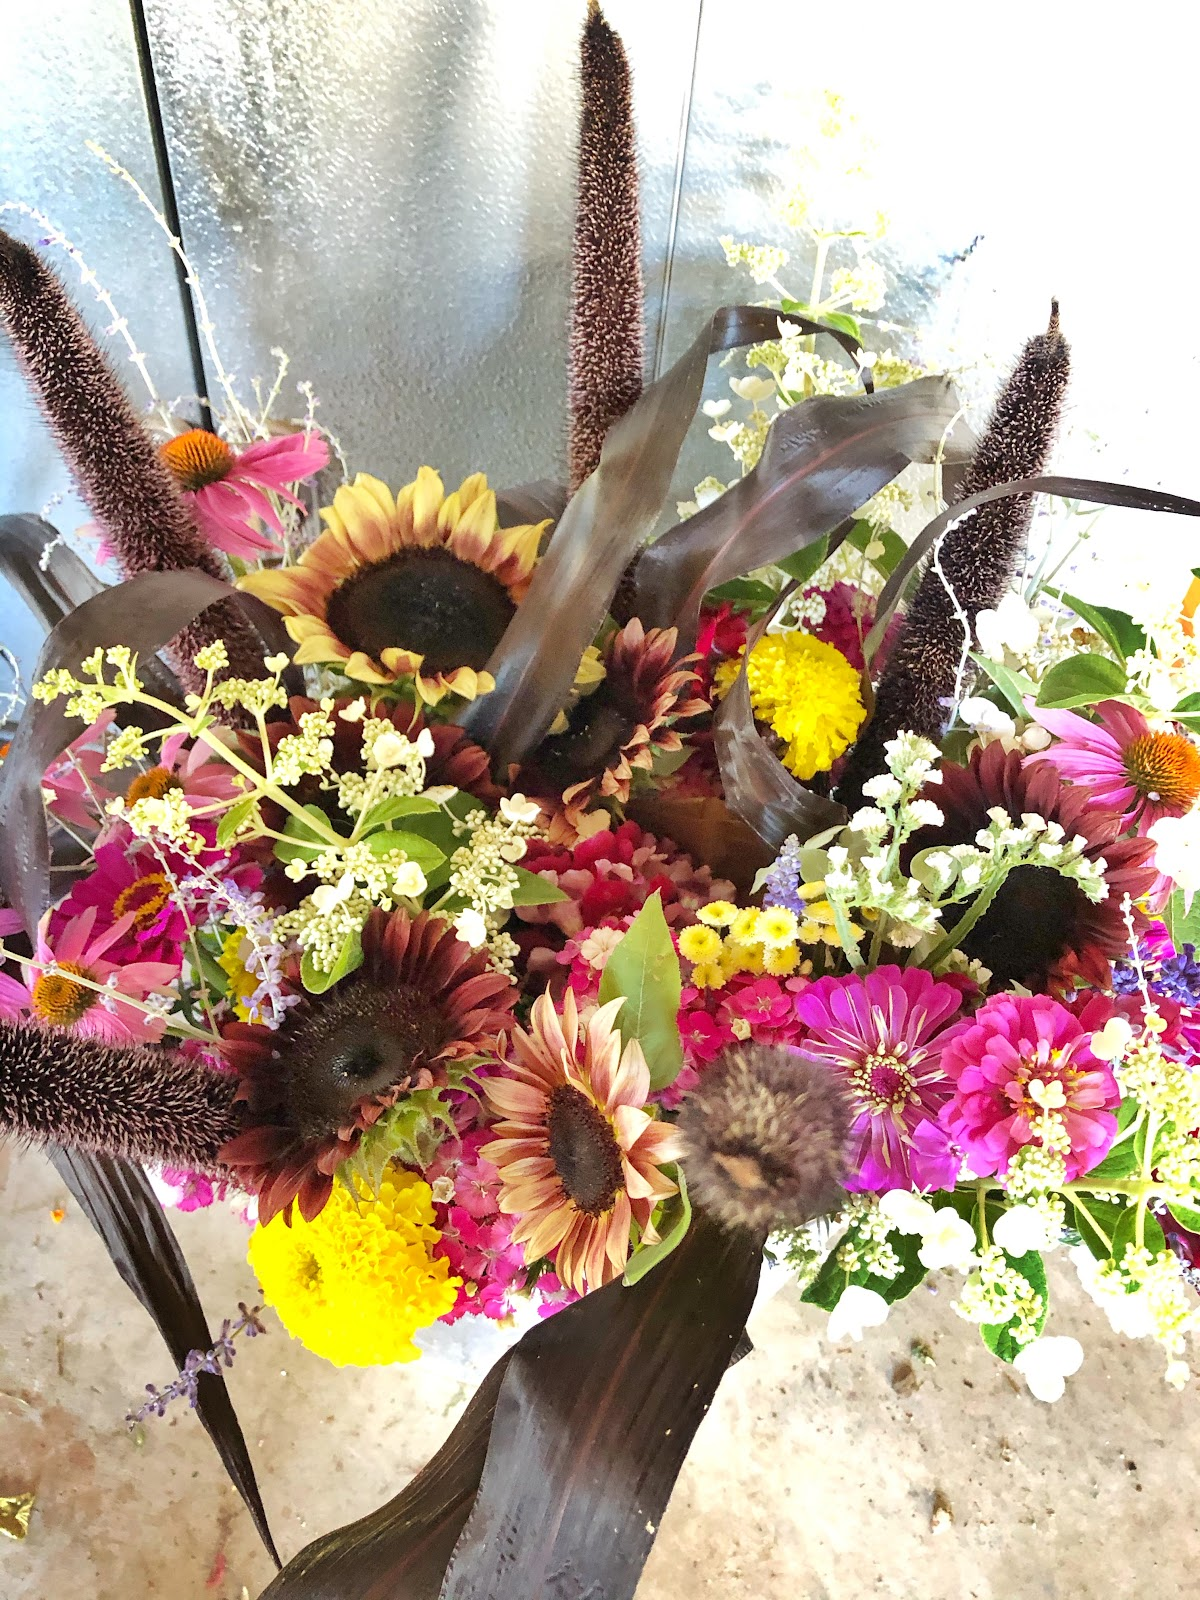 bucket with 6 bouquets featuring red, purple and yellow flowers including sunflowers, hydrangea and zinnias